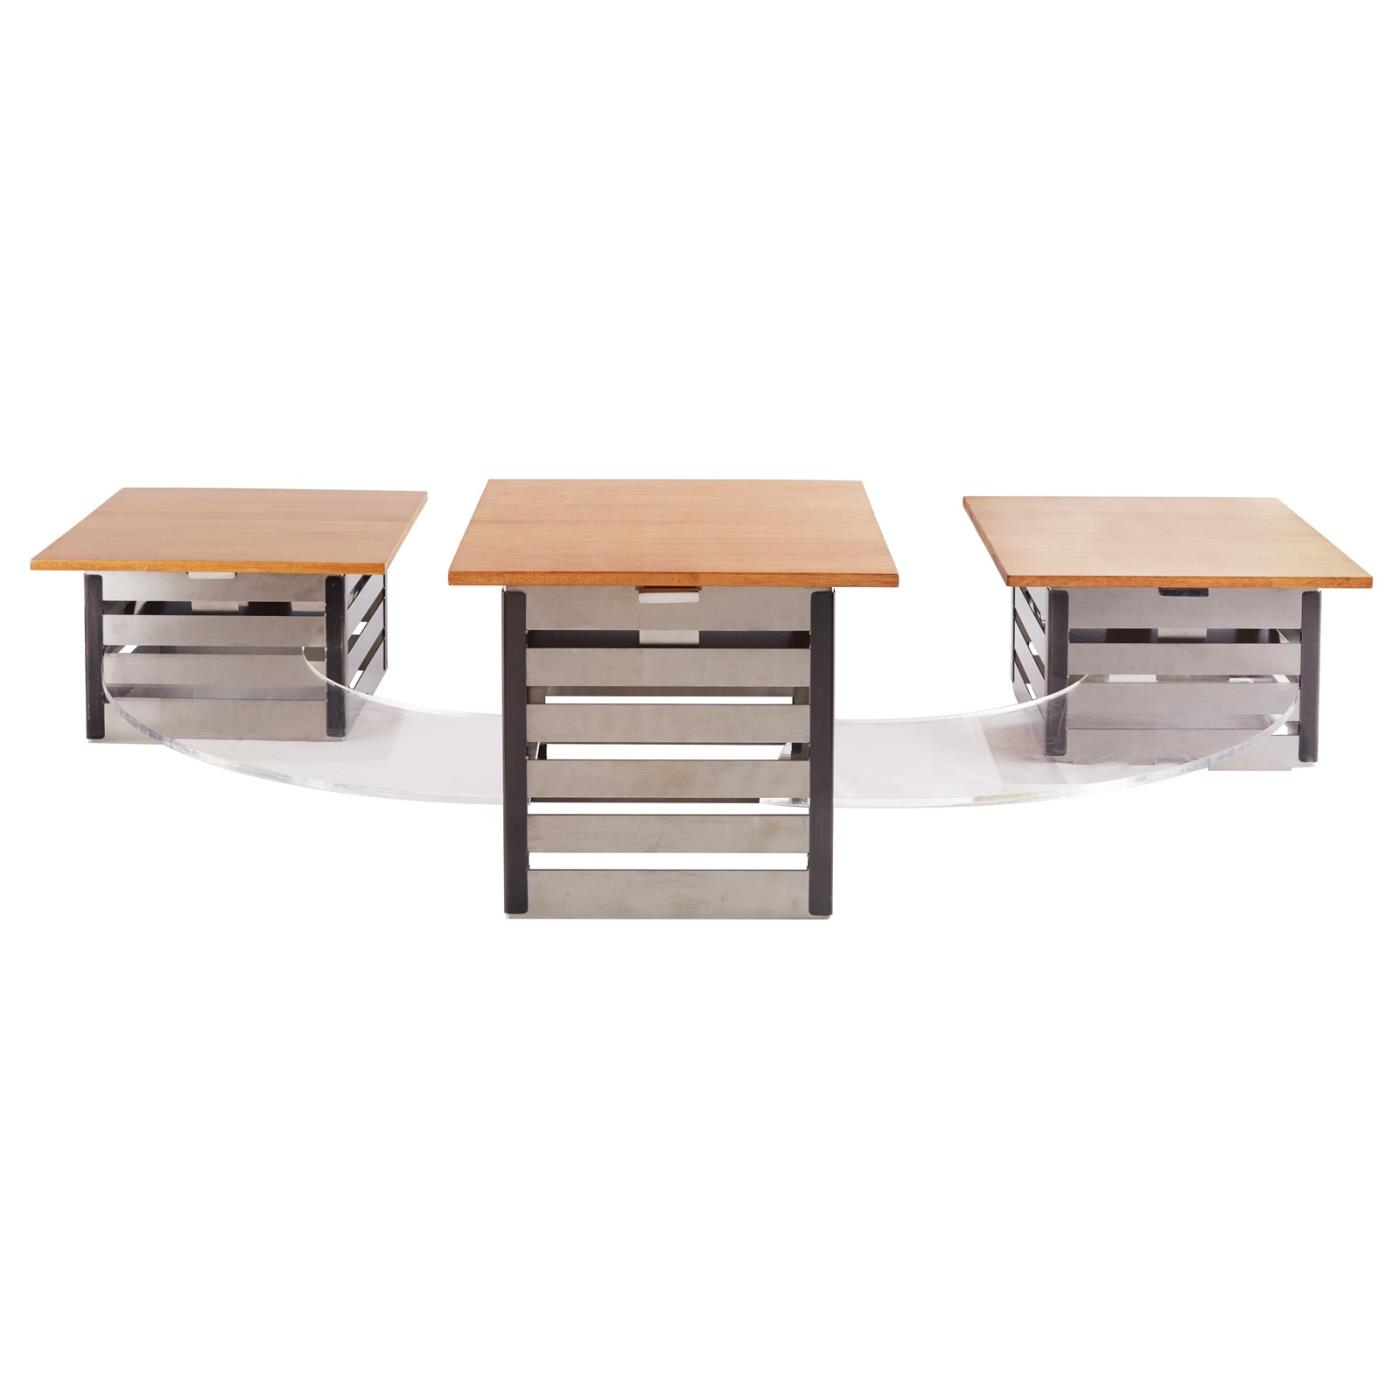 Industrial Steel Riser Set with LACS Curved Platforms